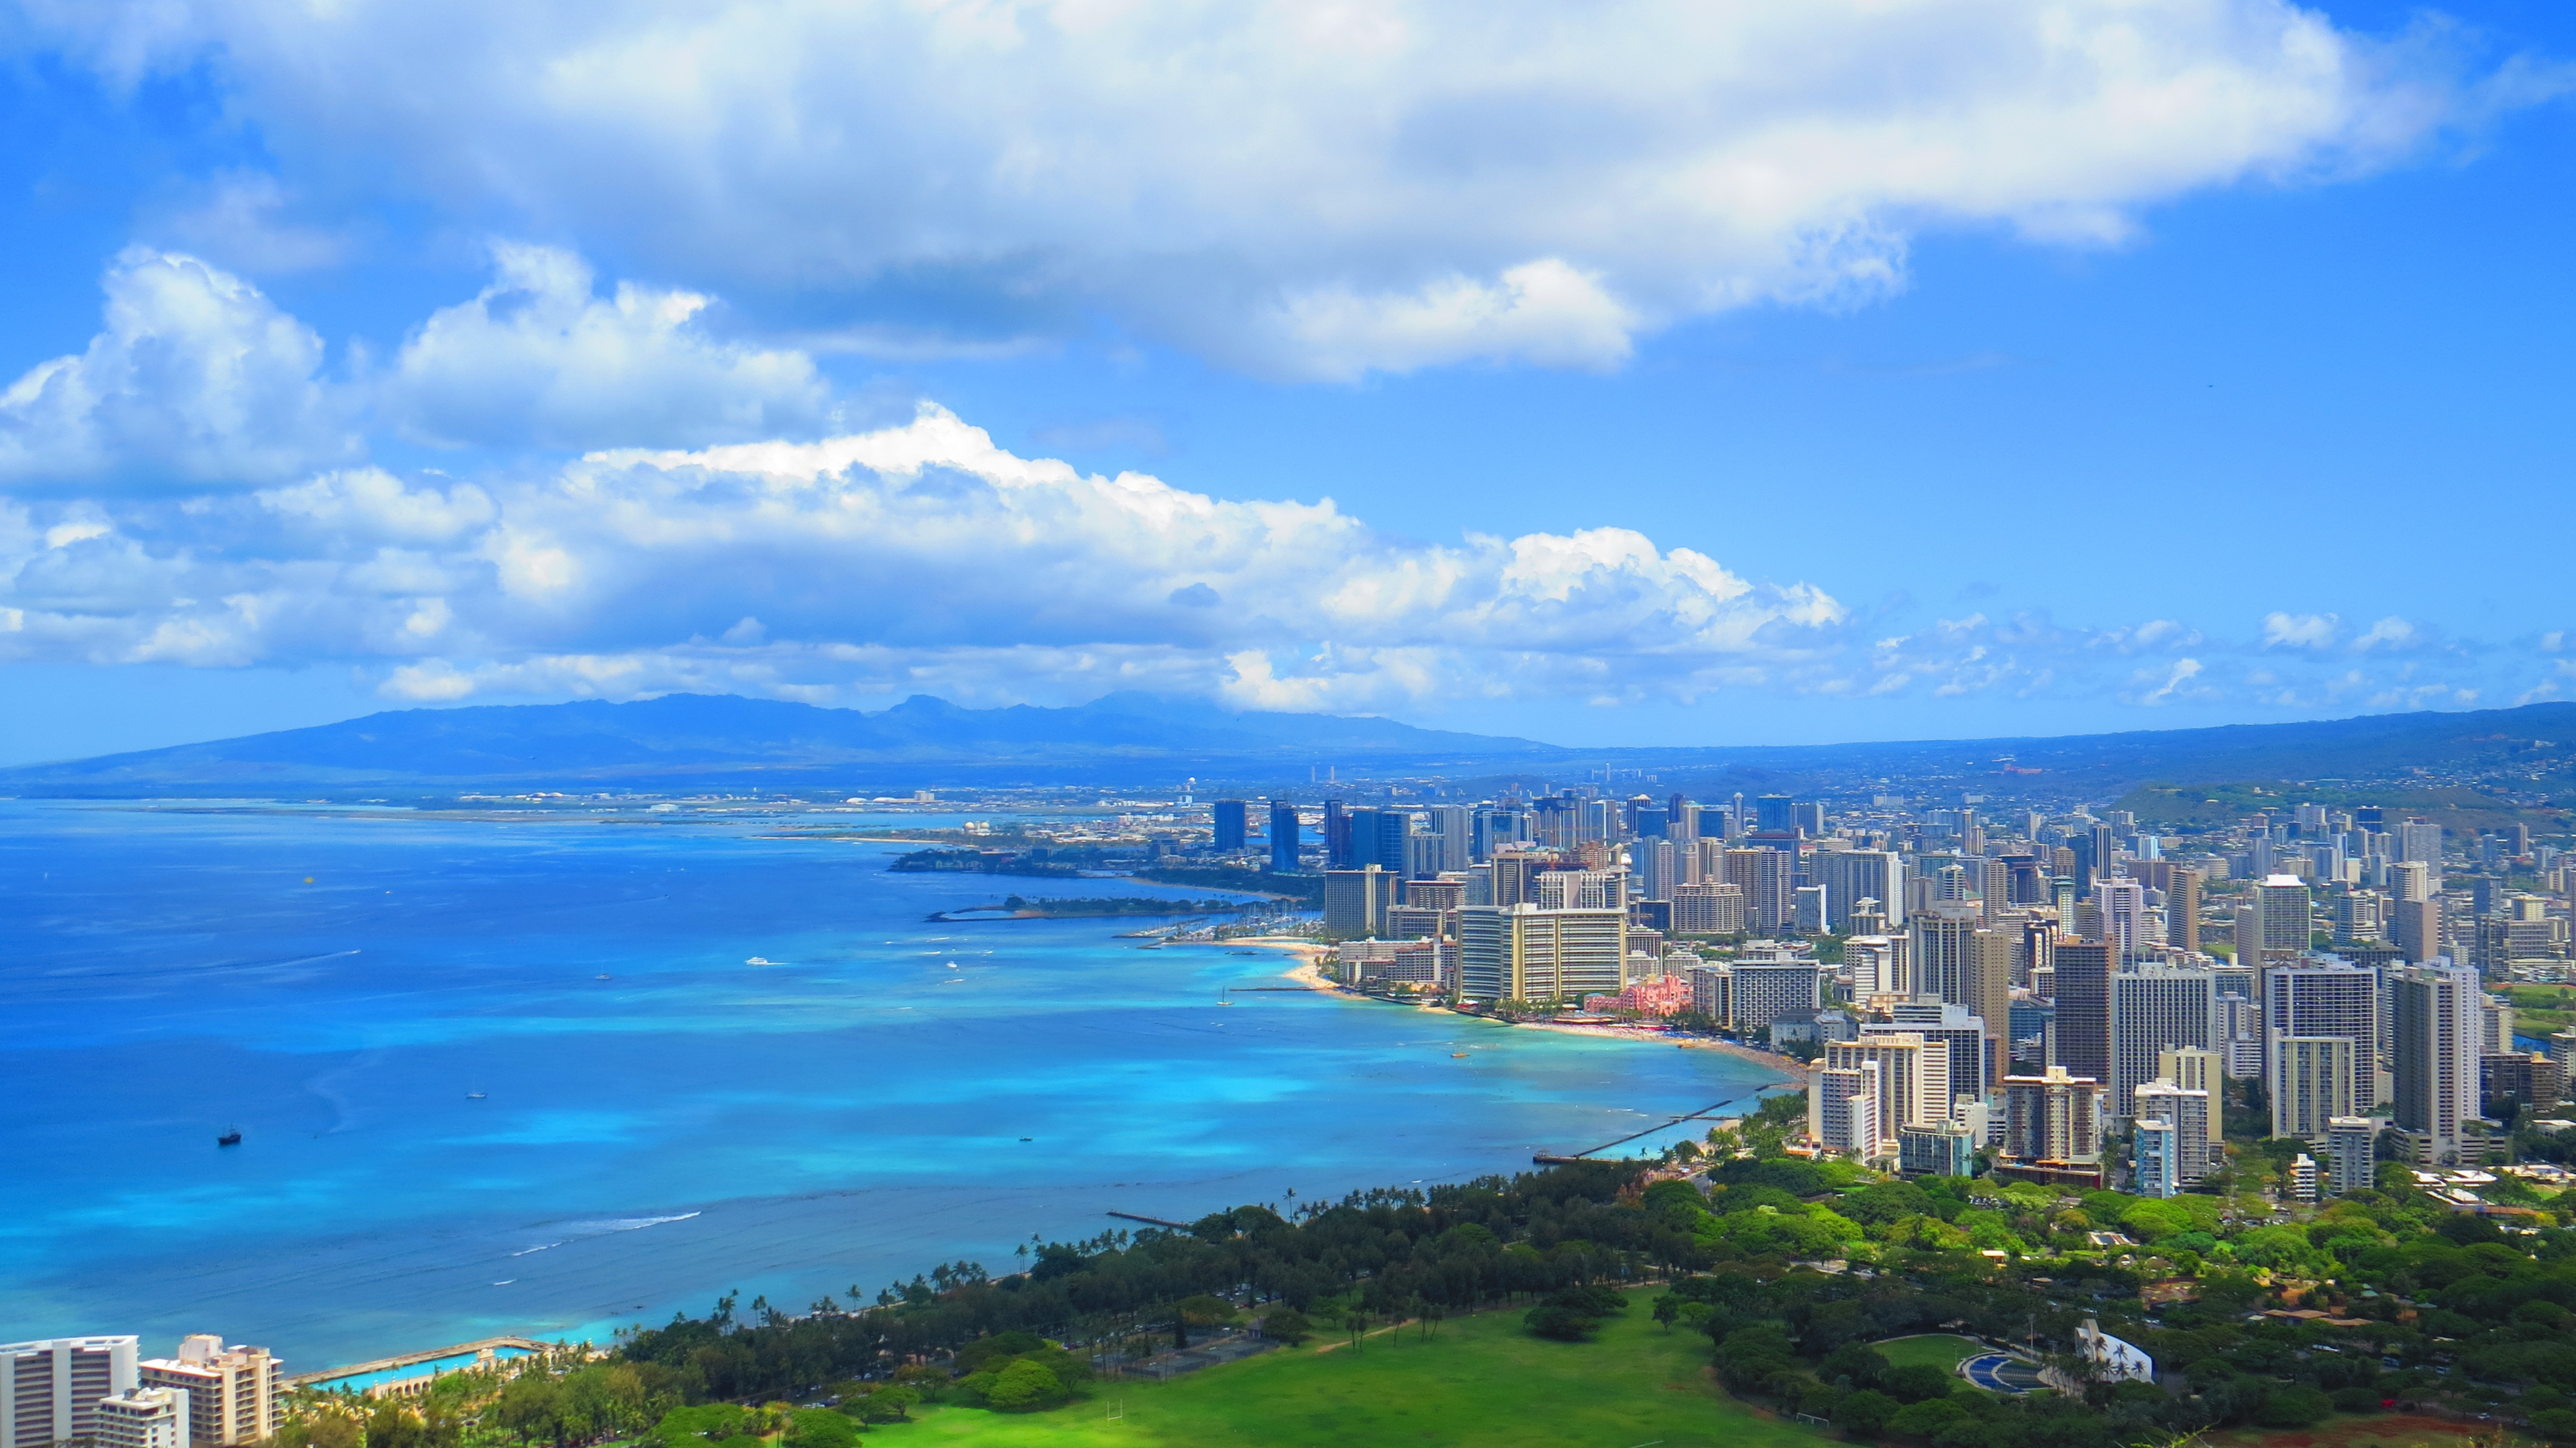 Downtown Honolulu and Waikiki from Diamond Head